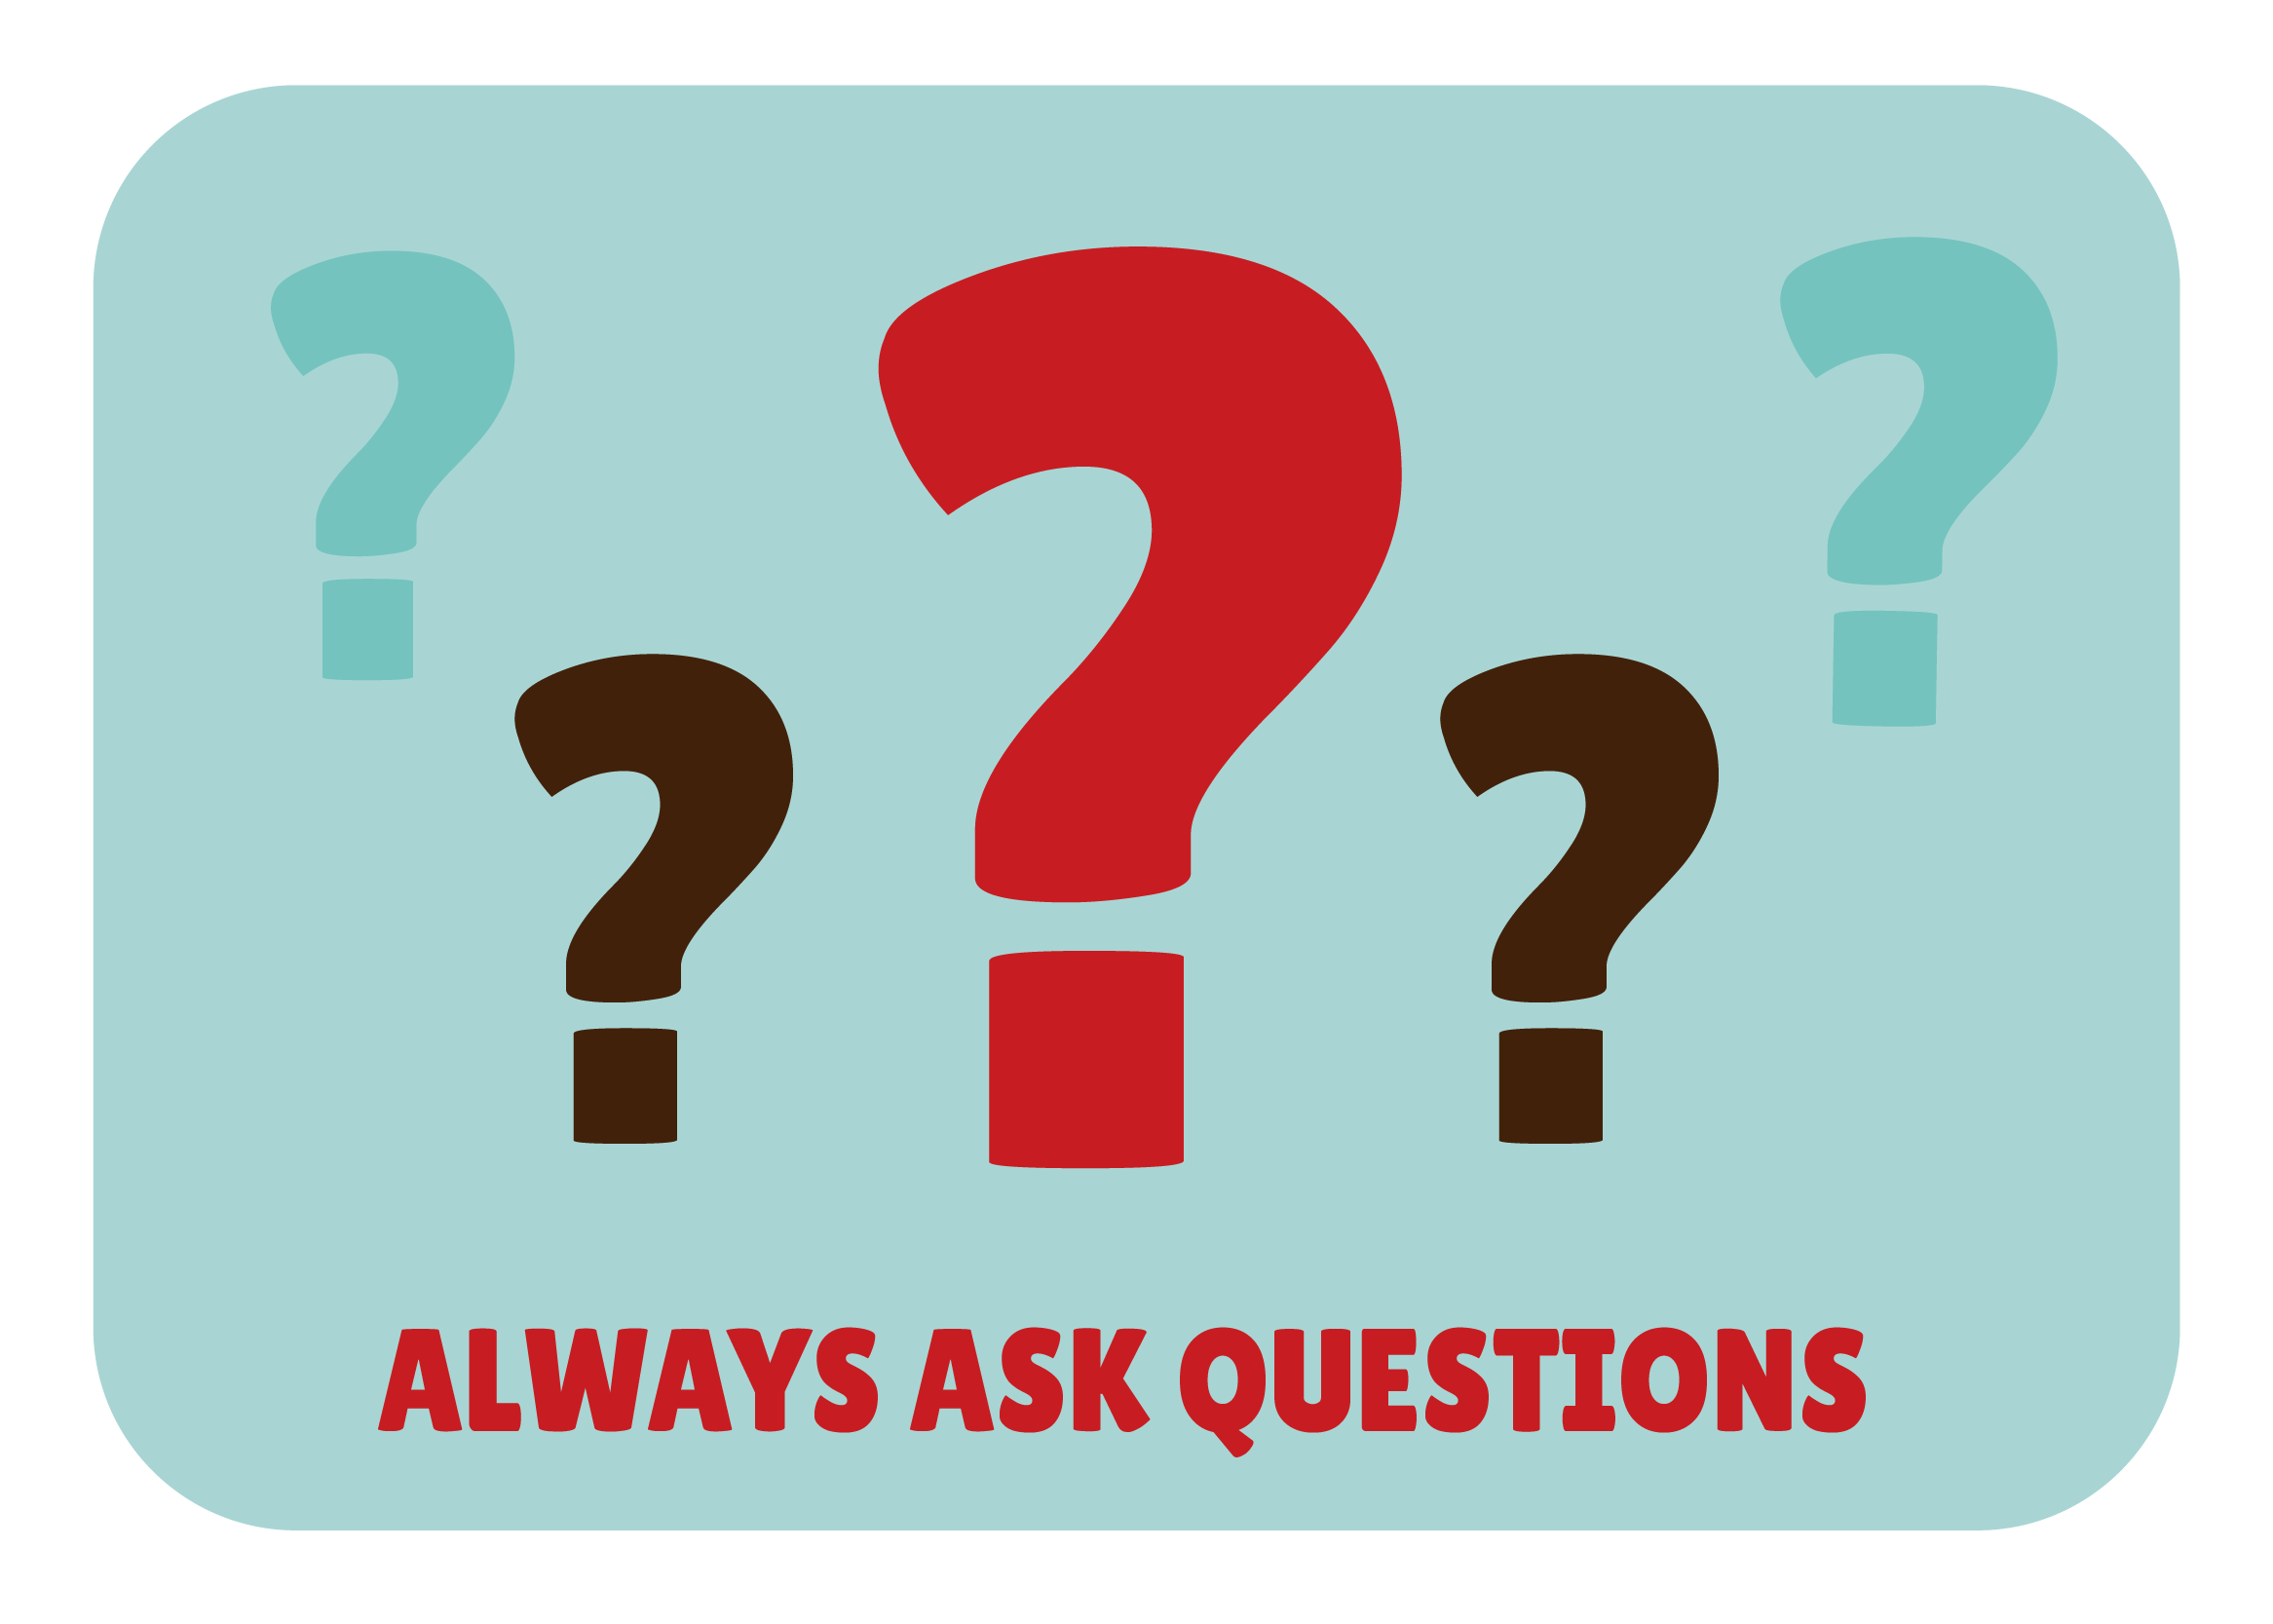 Always-ask-questions.png